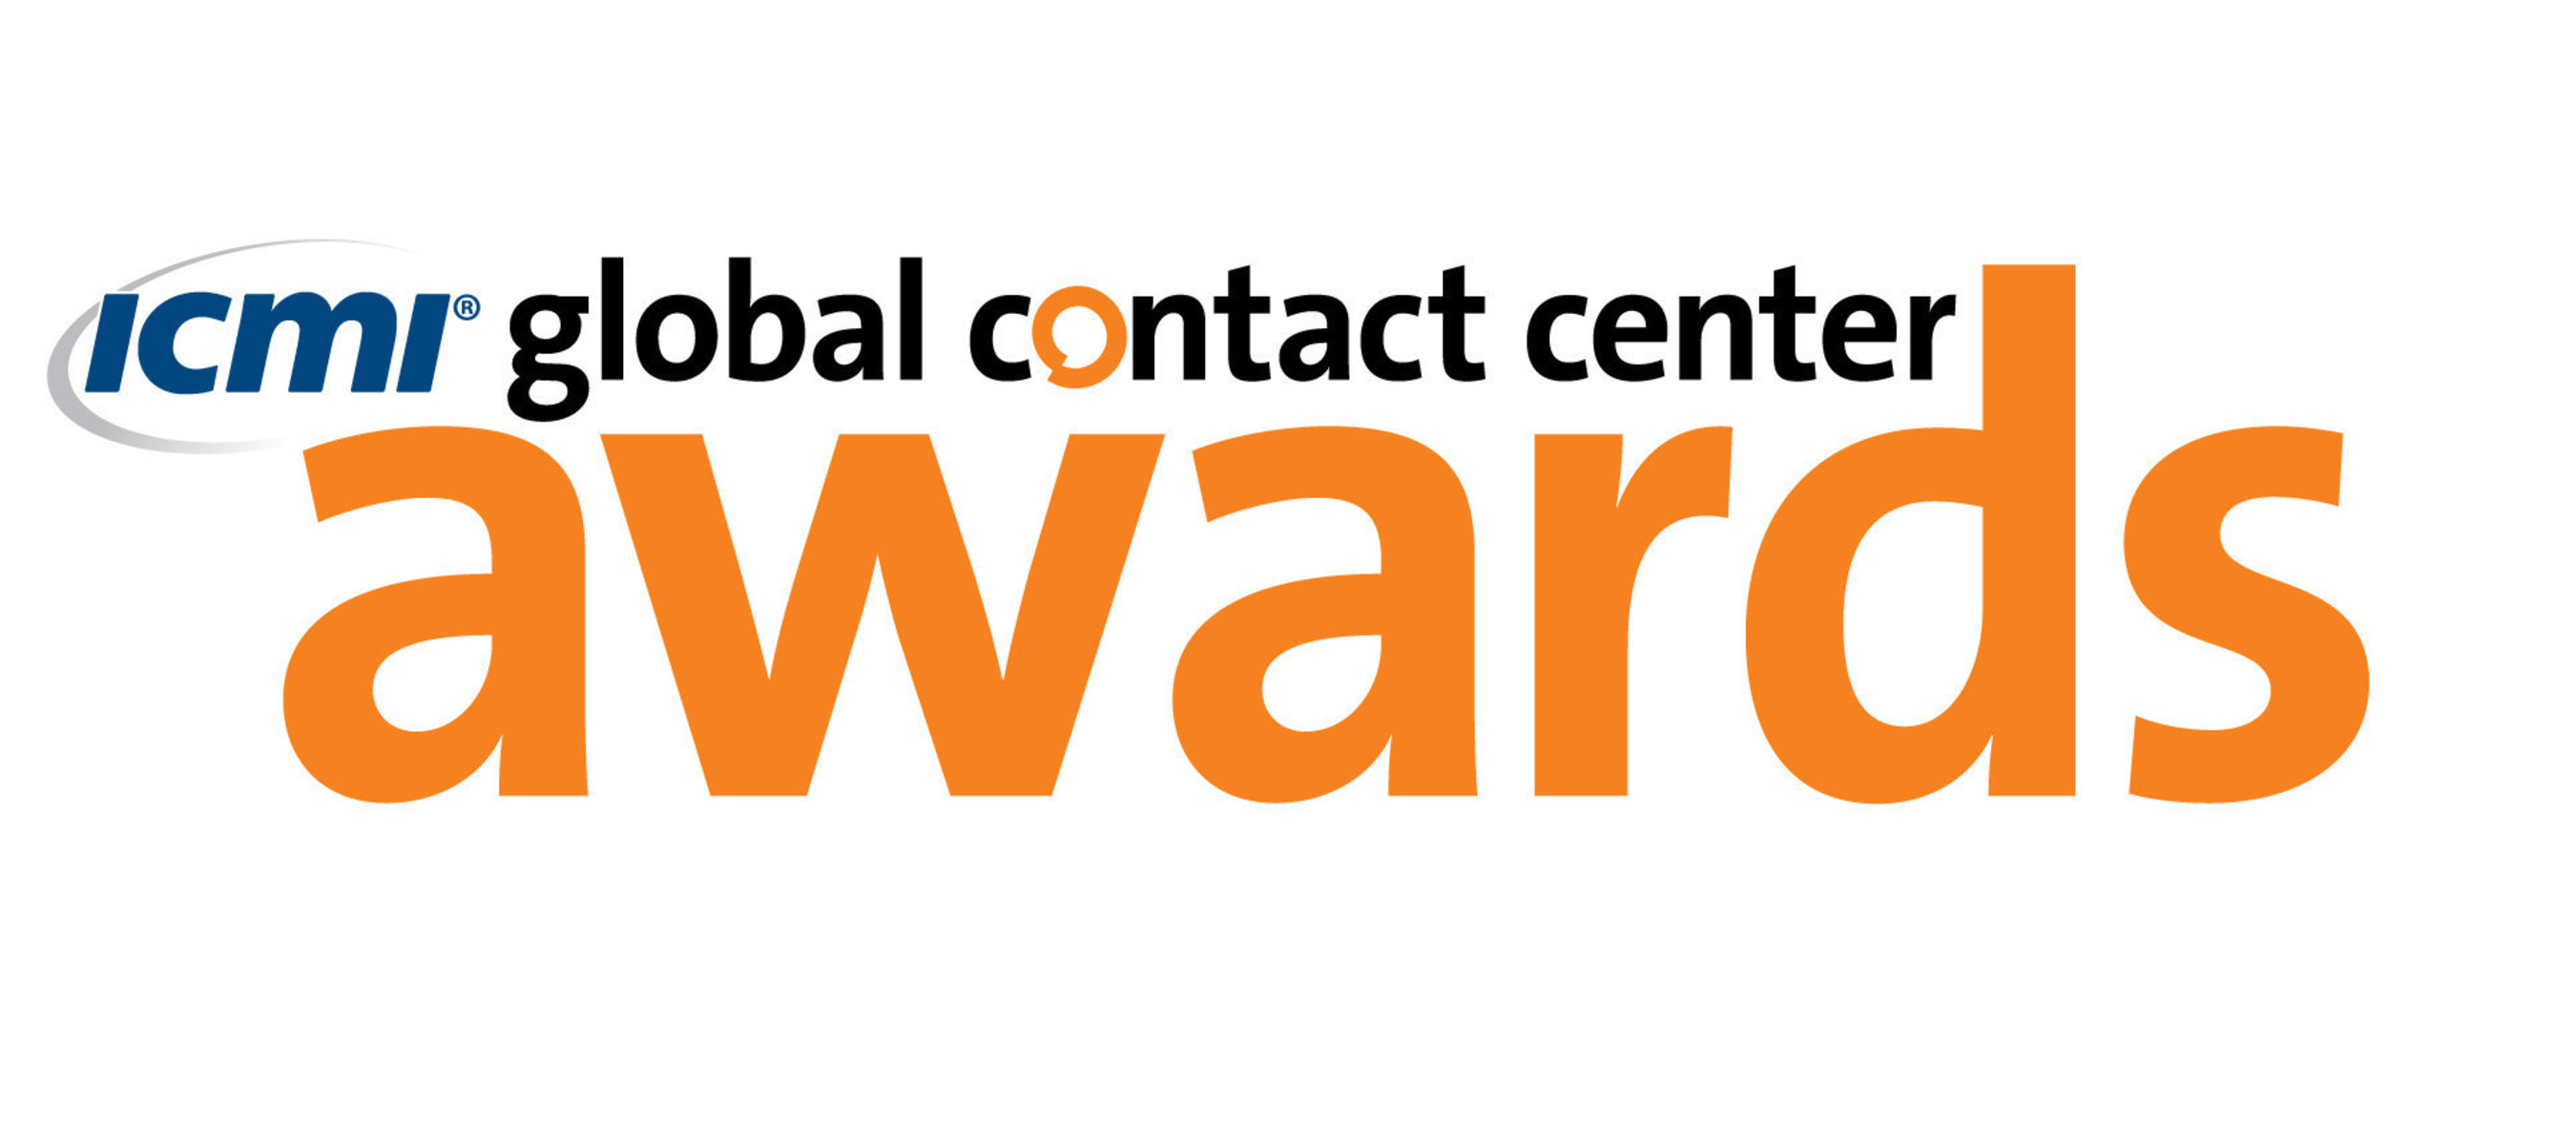 Winners of Global Contact Center Awards will be honored at a ceremony held during the 2016 Contact Center Expo & Conference.